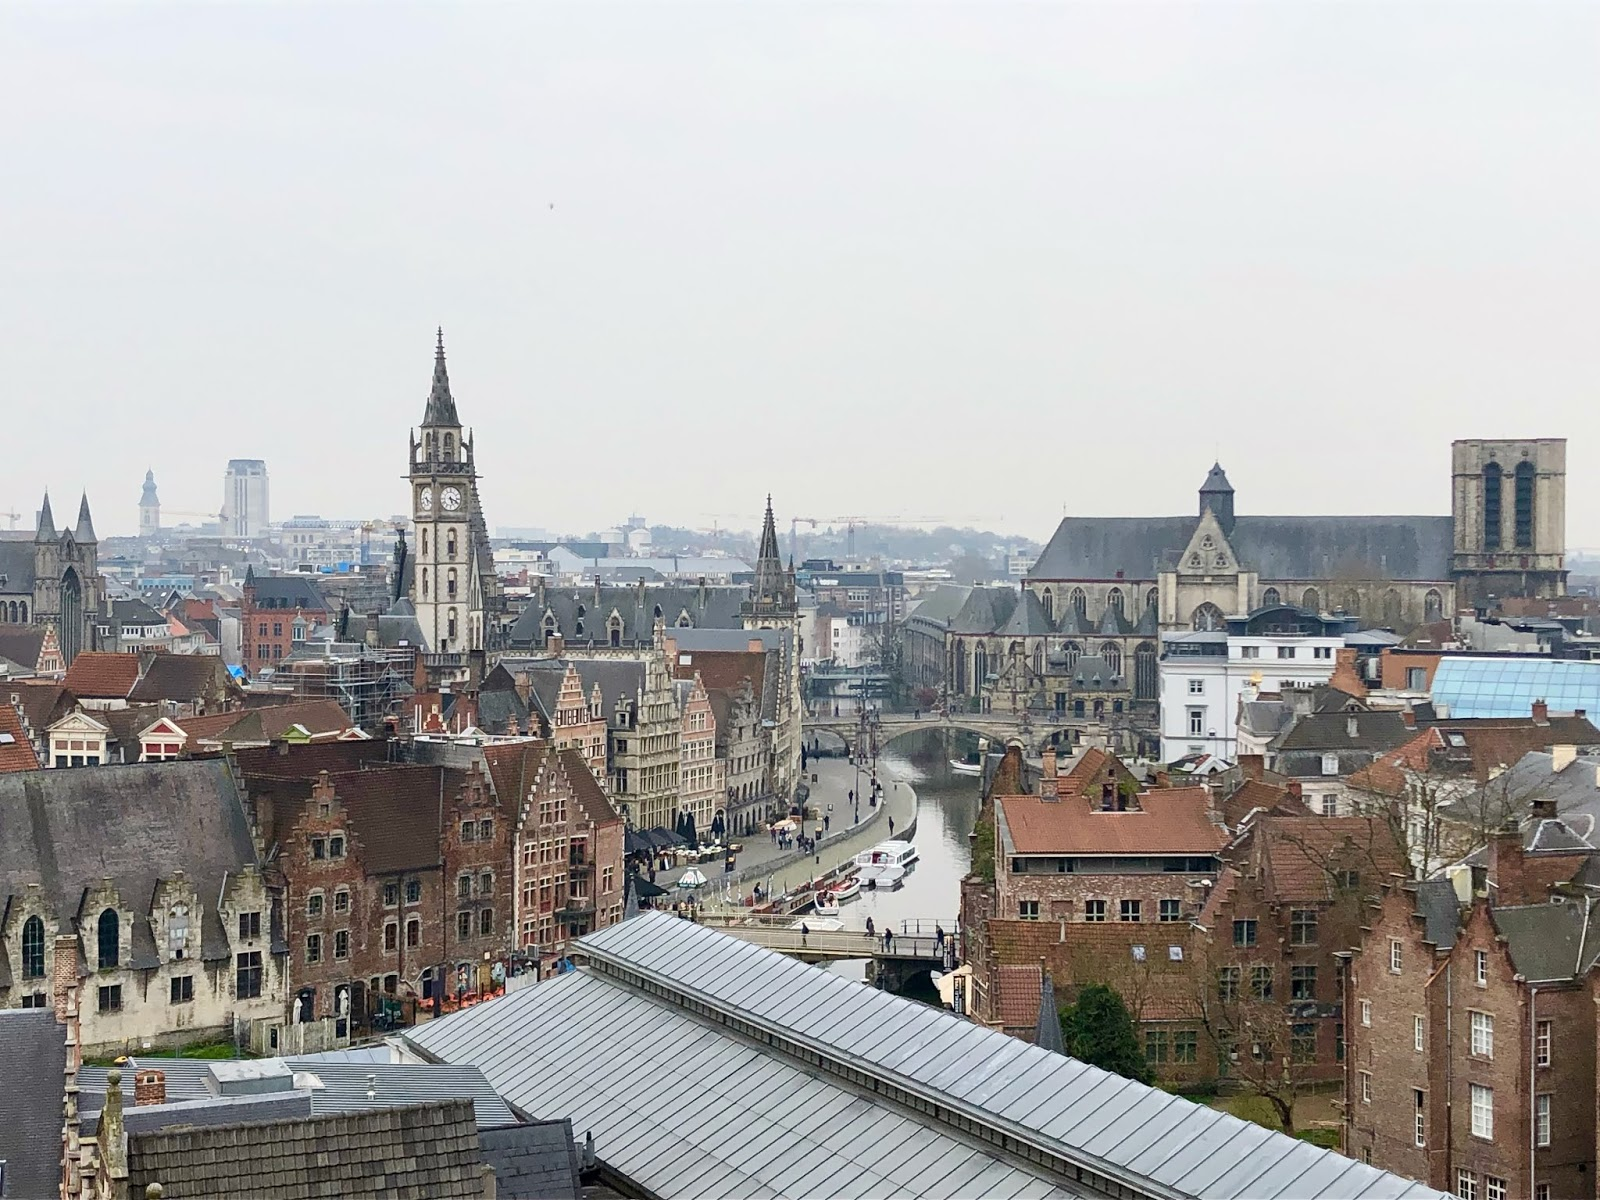 Best view from top of the castle in Ghent, Belgium